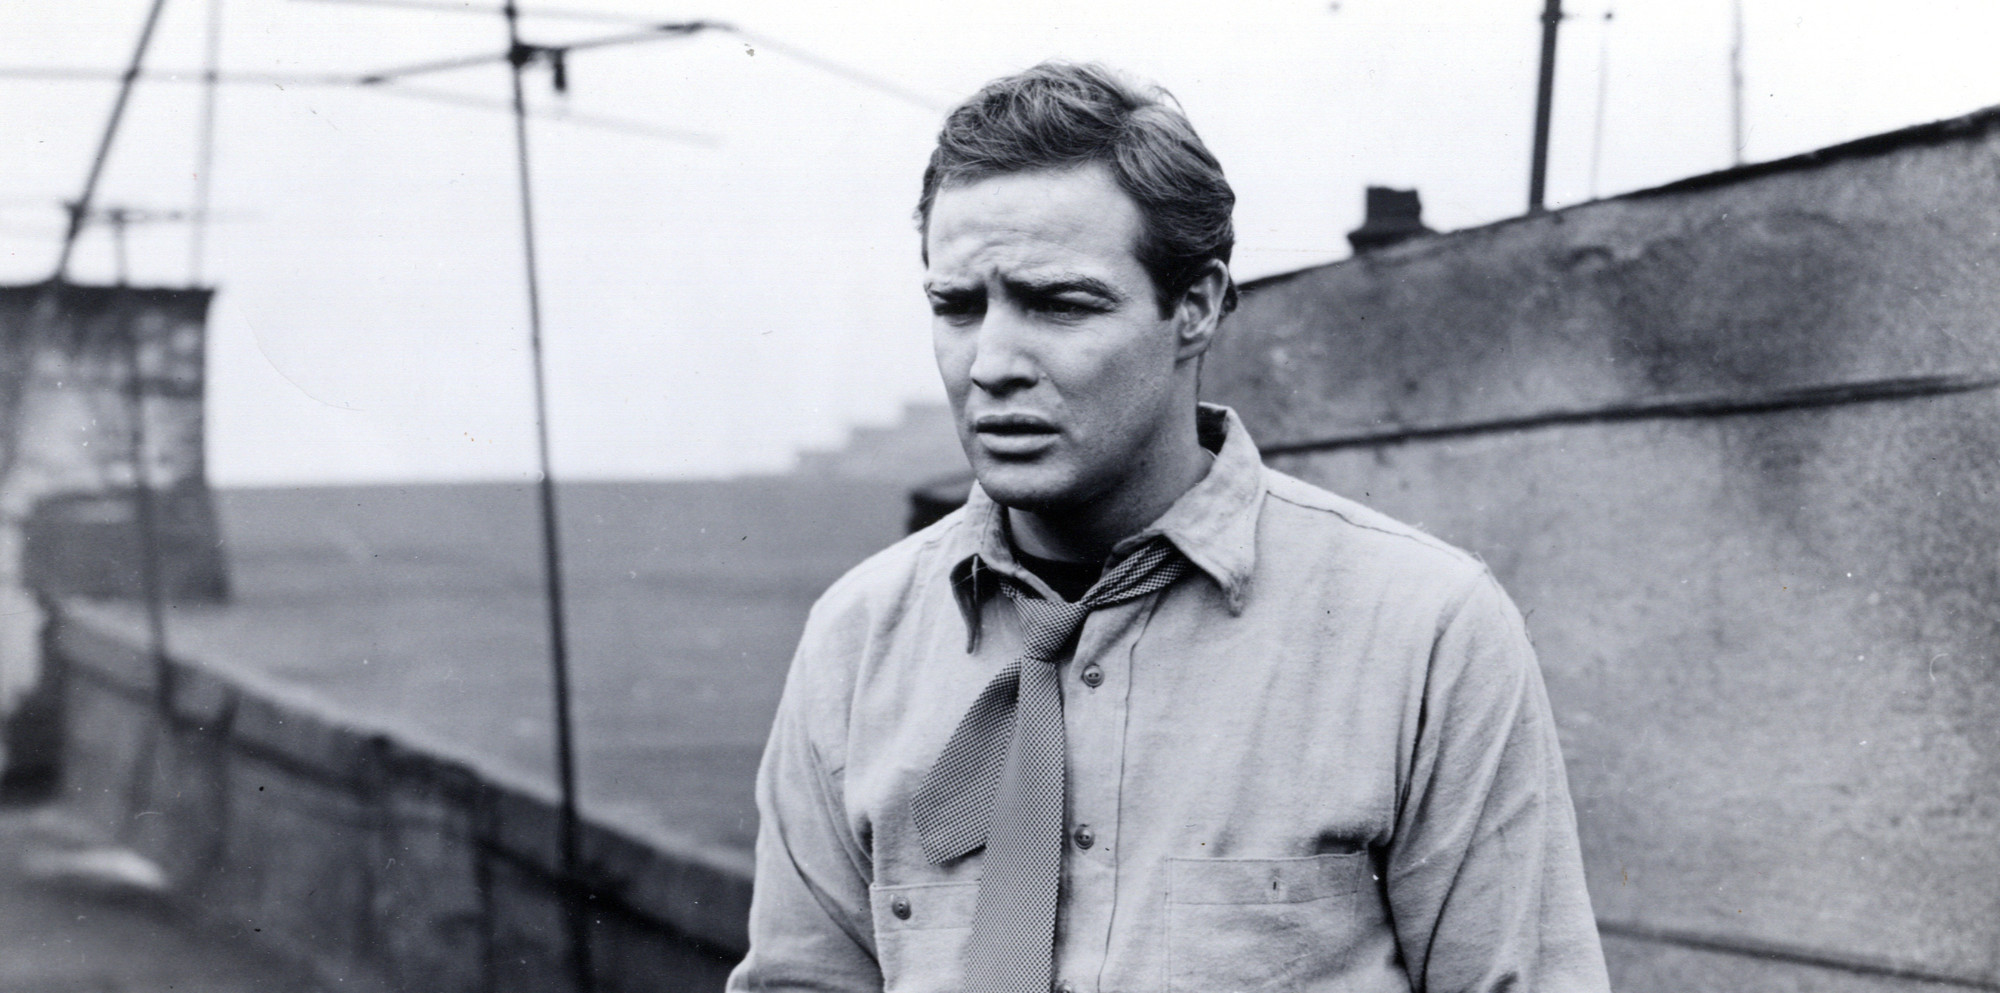 on the waterfront by elia kazan essay In 1952, when elia kazan gave the house un-american activities committee (huac) the names of eight actors who had been members with him of a communist party unit in the group theatre, he committed an act that would cloud his reputation for the rest of his life.